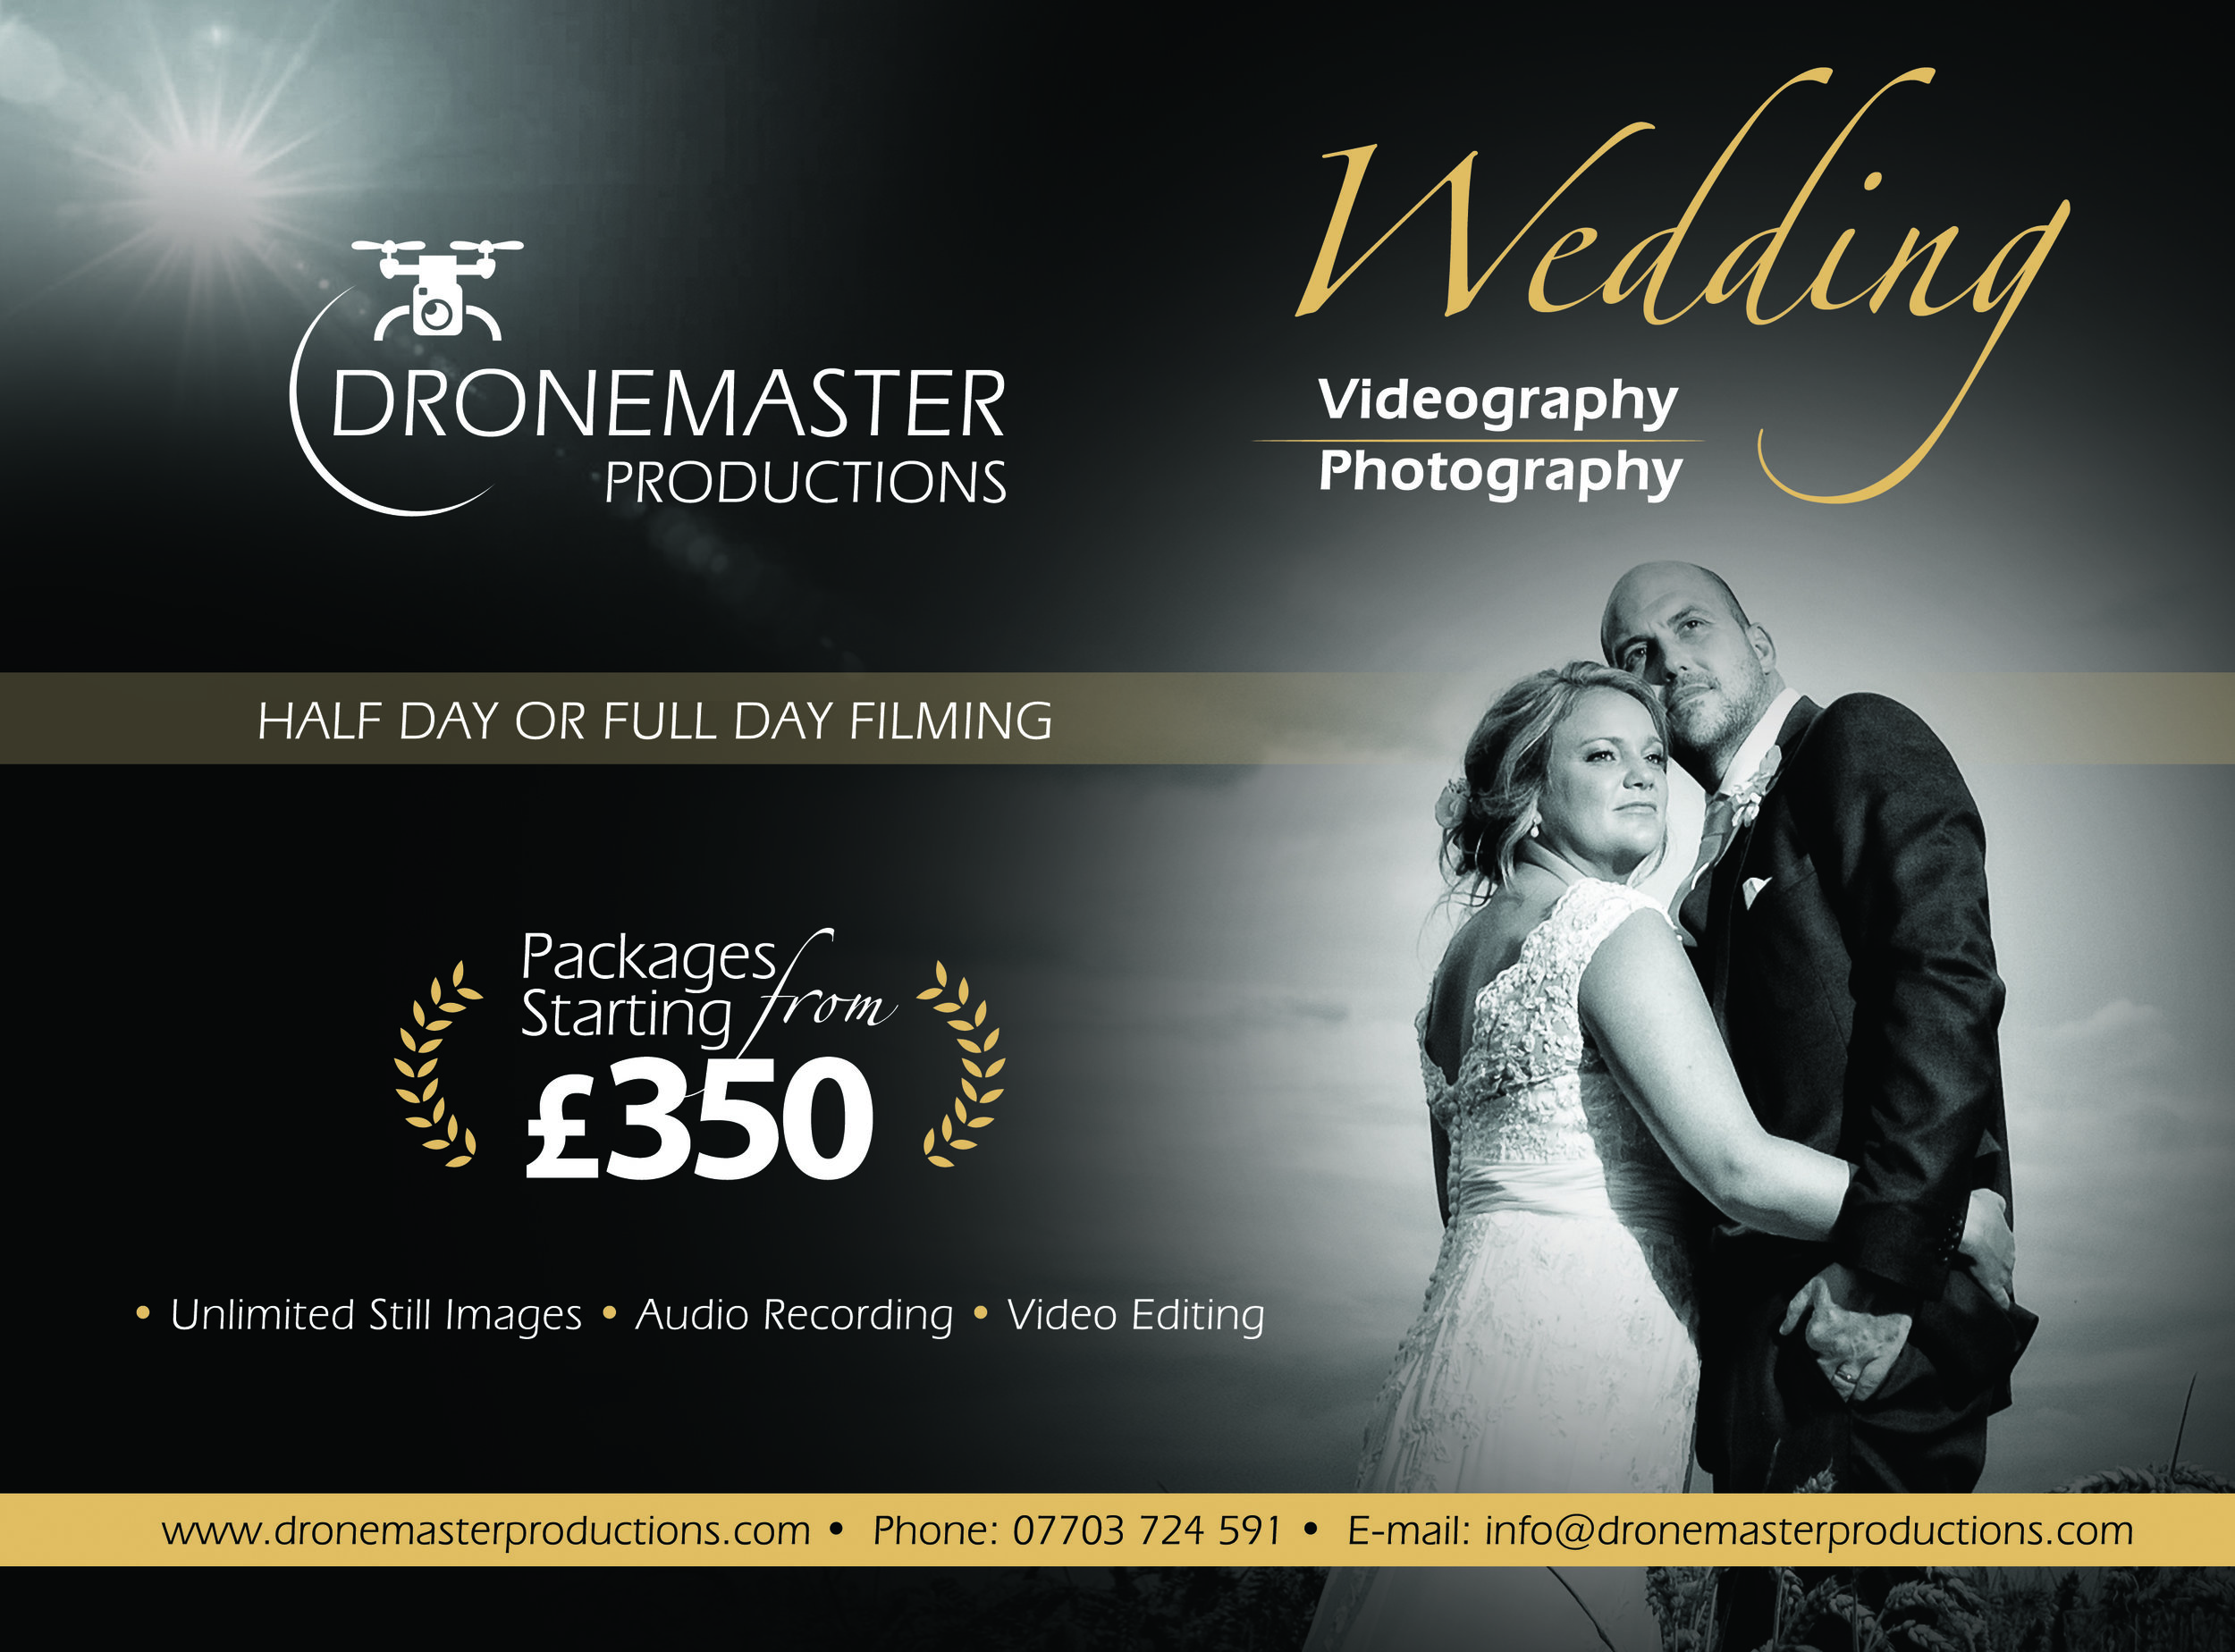 Wedding Photography / Videography - Package 1. £350Stills photographyHalf day filming (4 hours on site)Unedited video footage, video scenes of your choice.Package 2 £850Stills photographyHalf day filming (4 hours on site)2 x professionally edited videos, (1 x 25 minute video + 1 x 2-3 minute video for social media uploadPackage 3. £999Stills photography.Full day filming, covering every aspect of the special day, scenes to be decided by the client such as visiting bride/groom in the morning of the event and anything else to create the perfect reminder of your day.2 x professionally edited videos, (1 x 25 minute video + 1 x 2-3 minute video for social media uploadAll video packages are filming in standard 1920x1080p resolution.If higher resolution is required, an extra fee is applied.